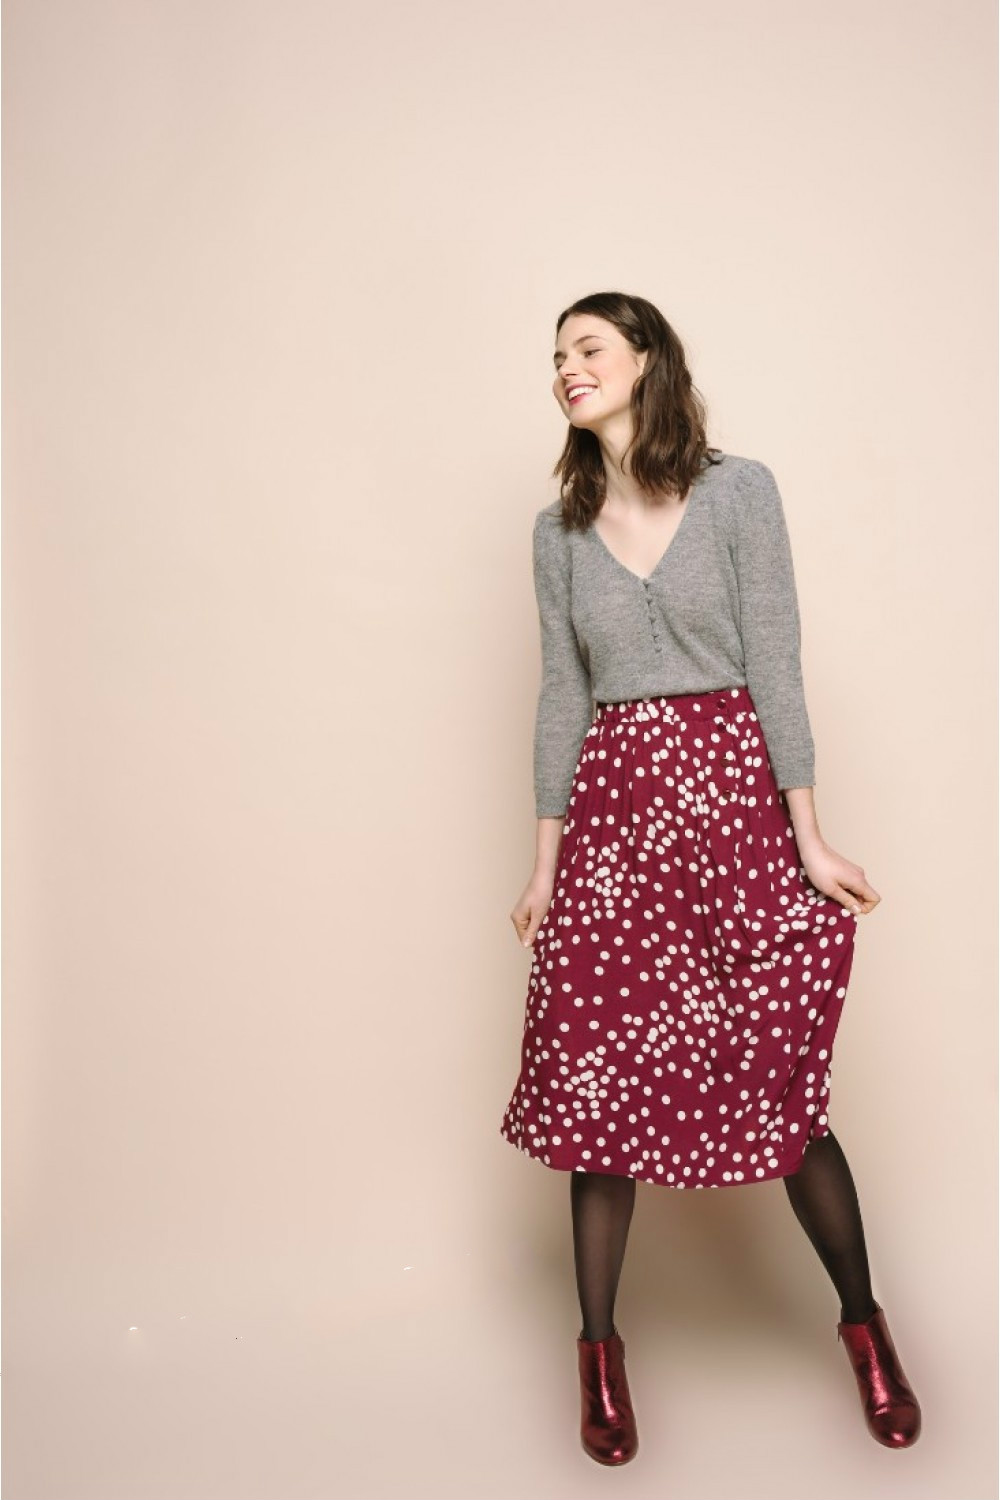 Women Skirt Vintage Polka Dot High Waist Midi Skirt